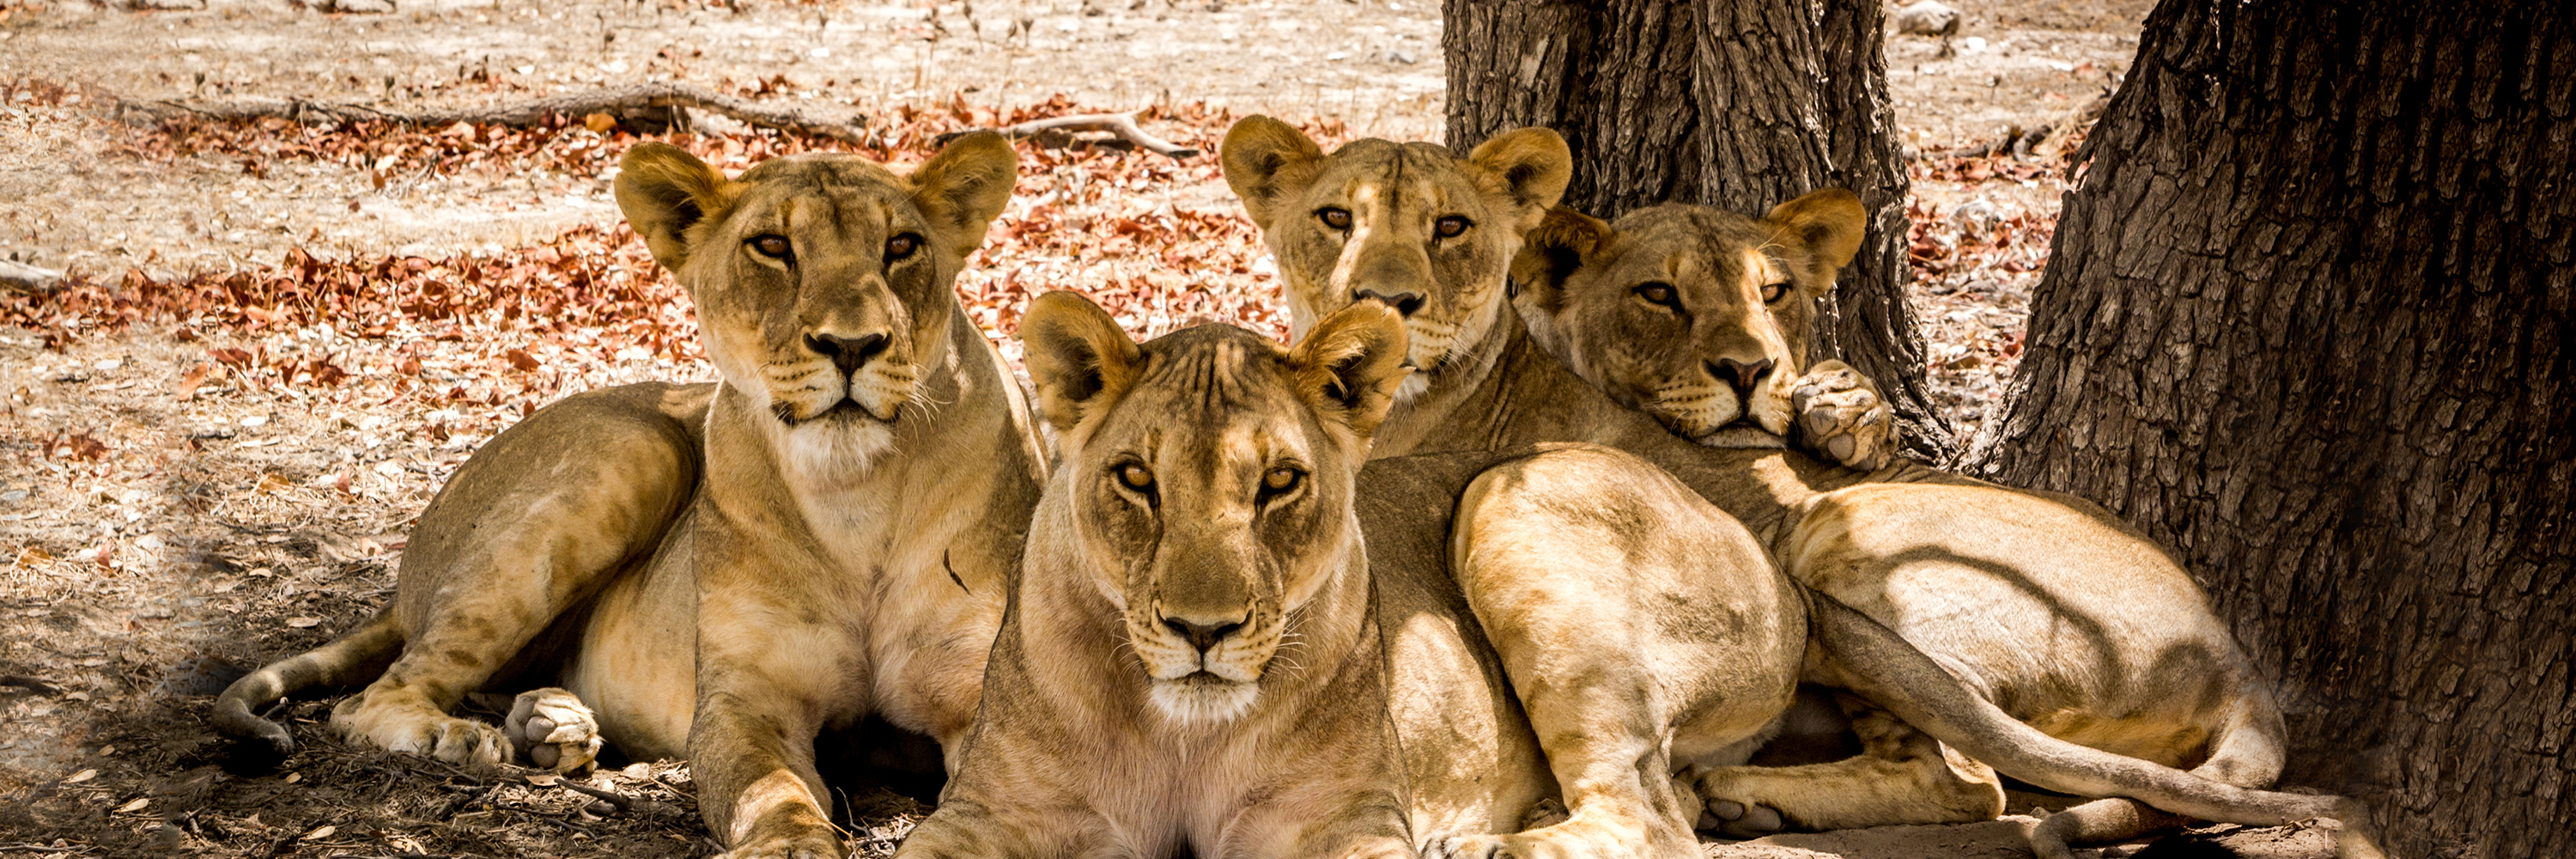 pack of lions lying down - cullinan namibia contact